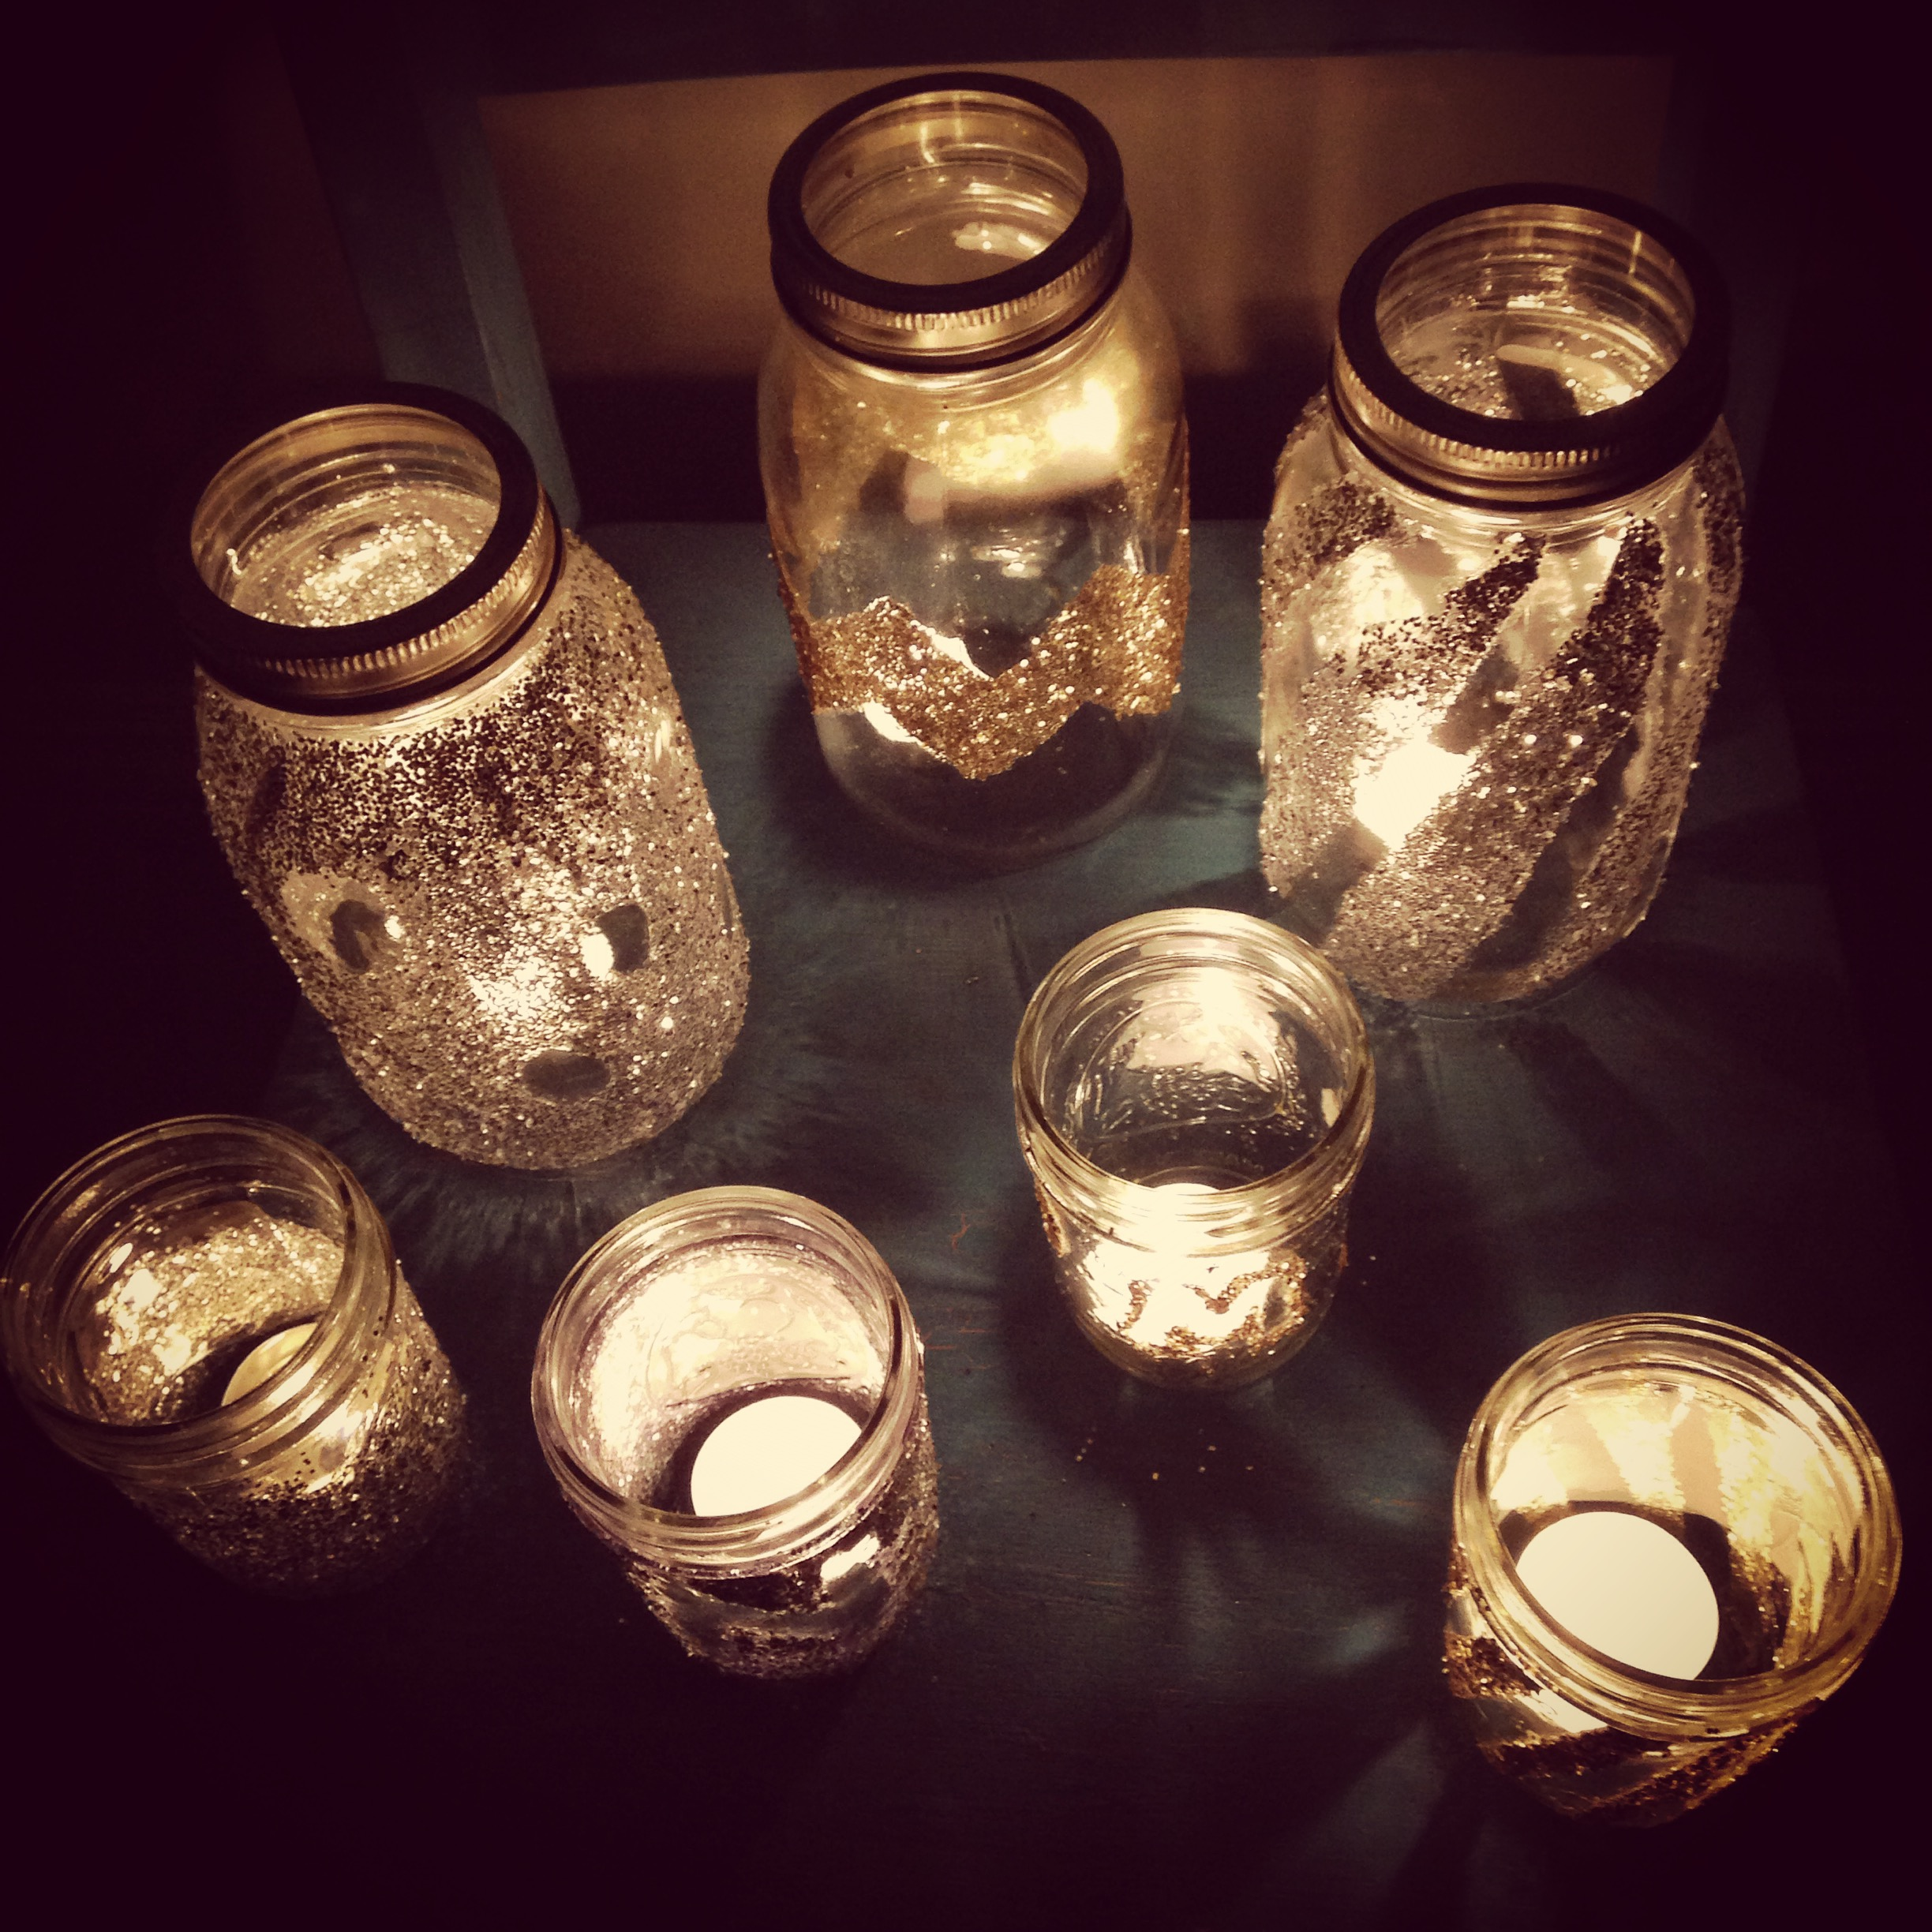 Handcraftedcandle holders created by party guests!